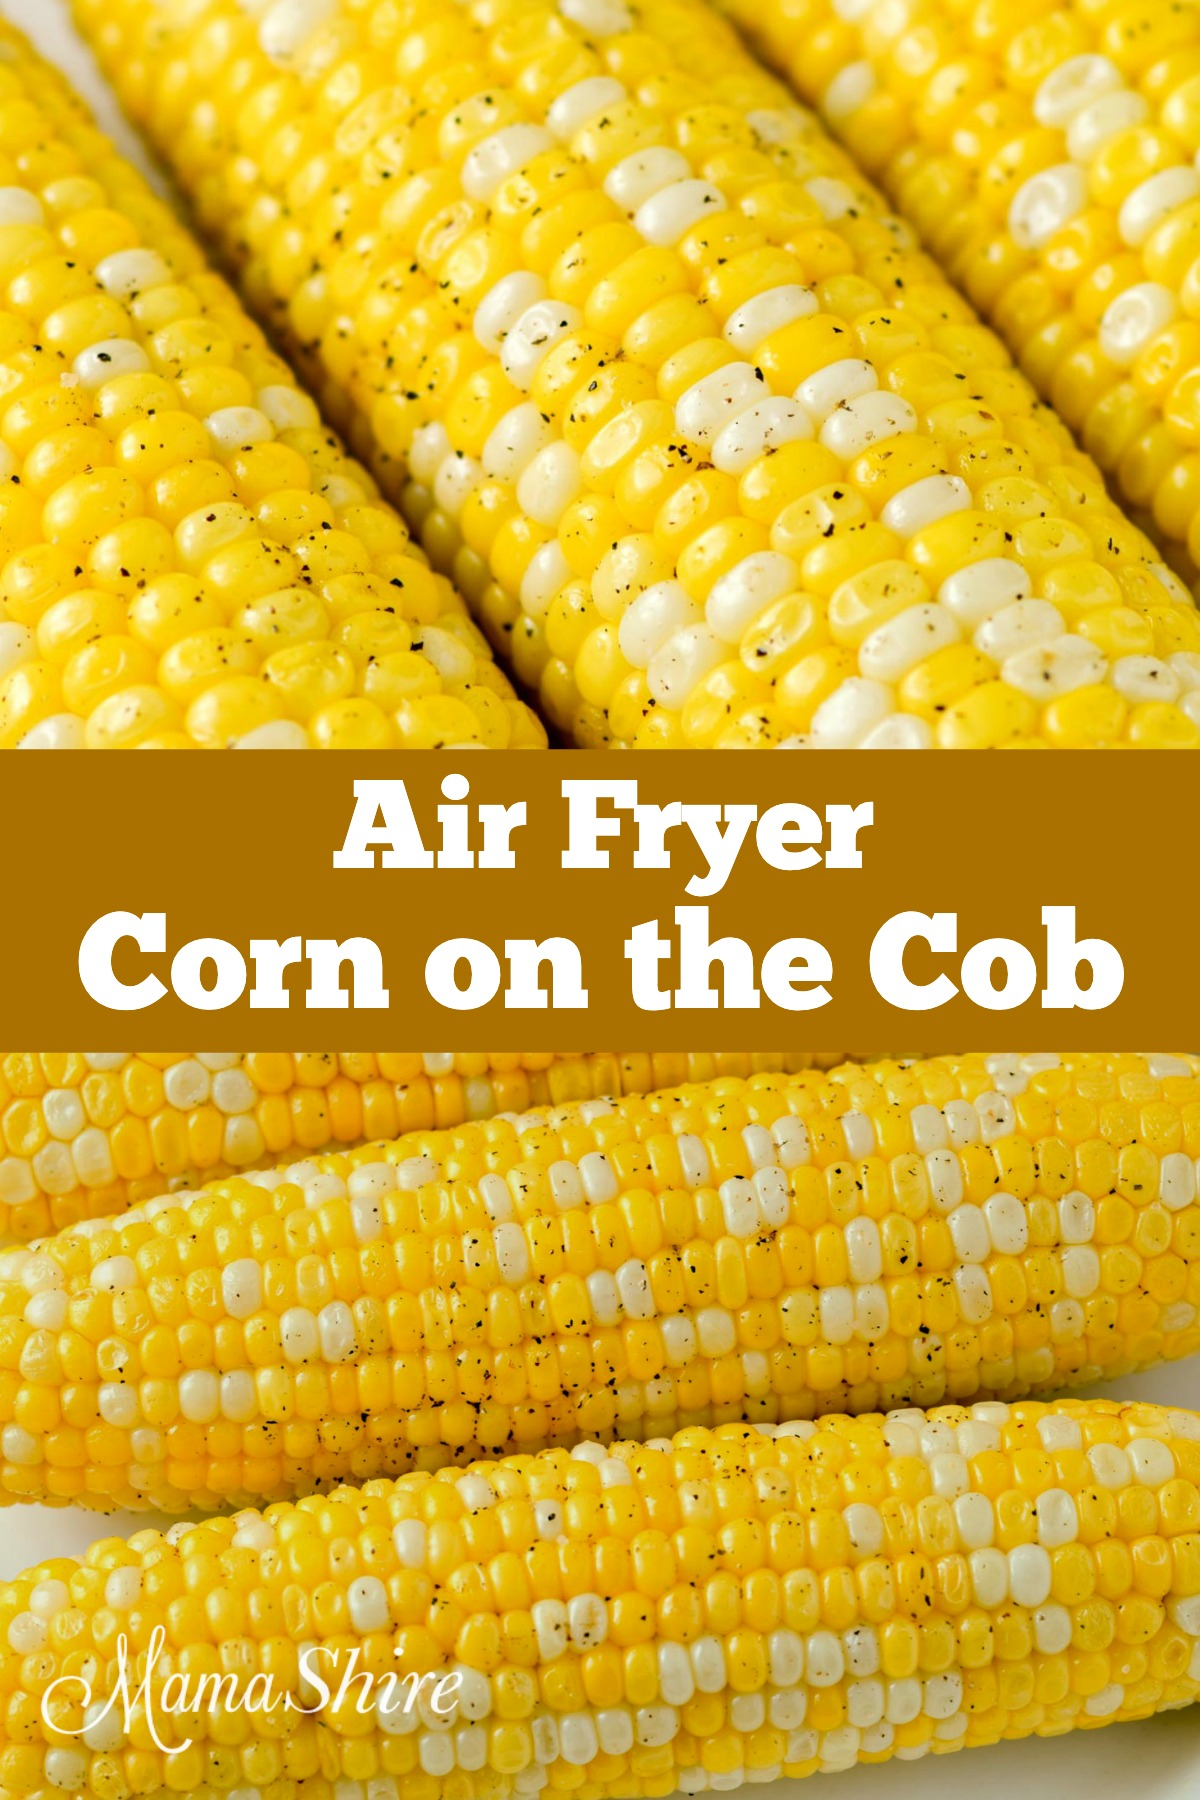 Corn on the cob that has been cooked in an air fryer.